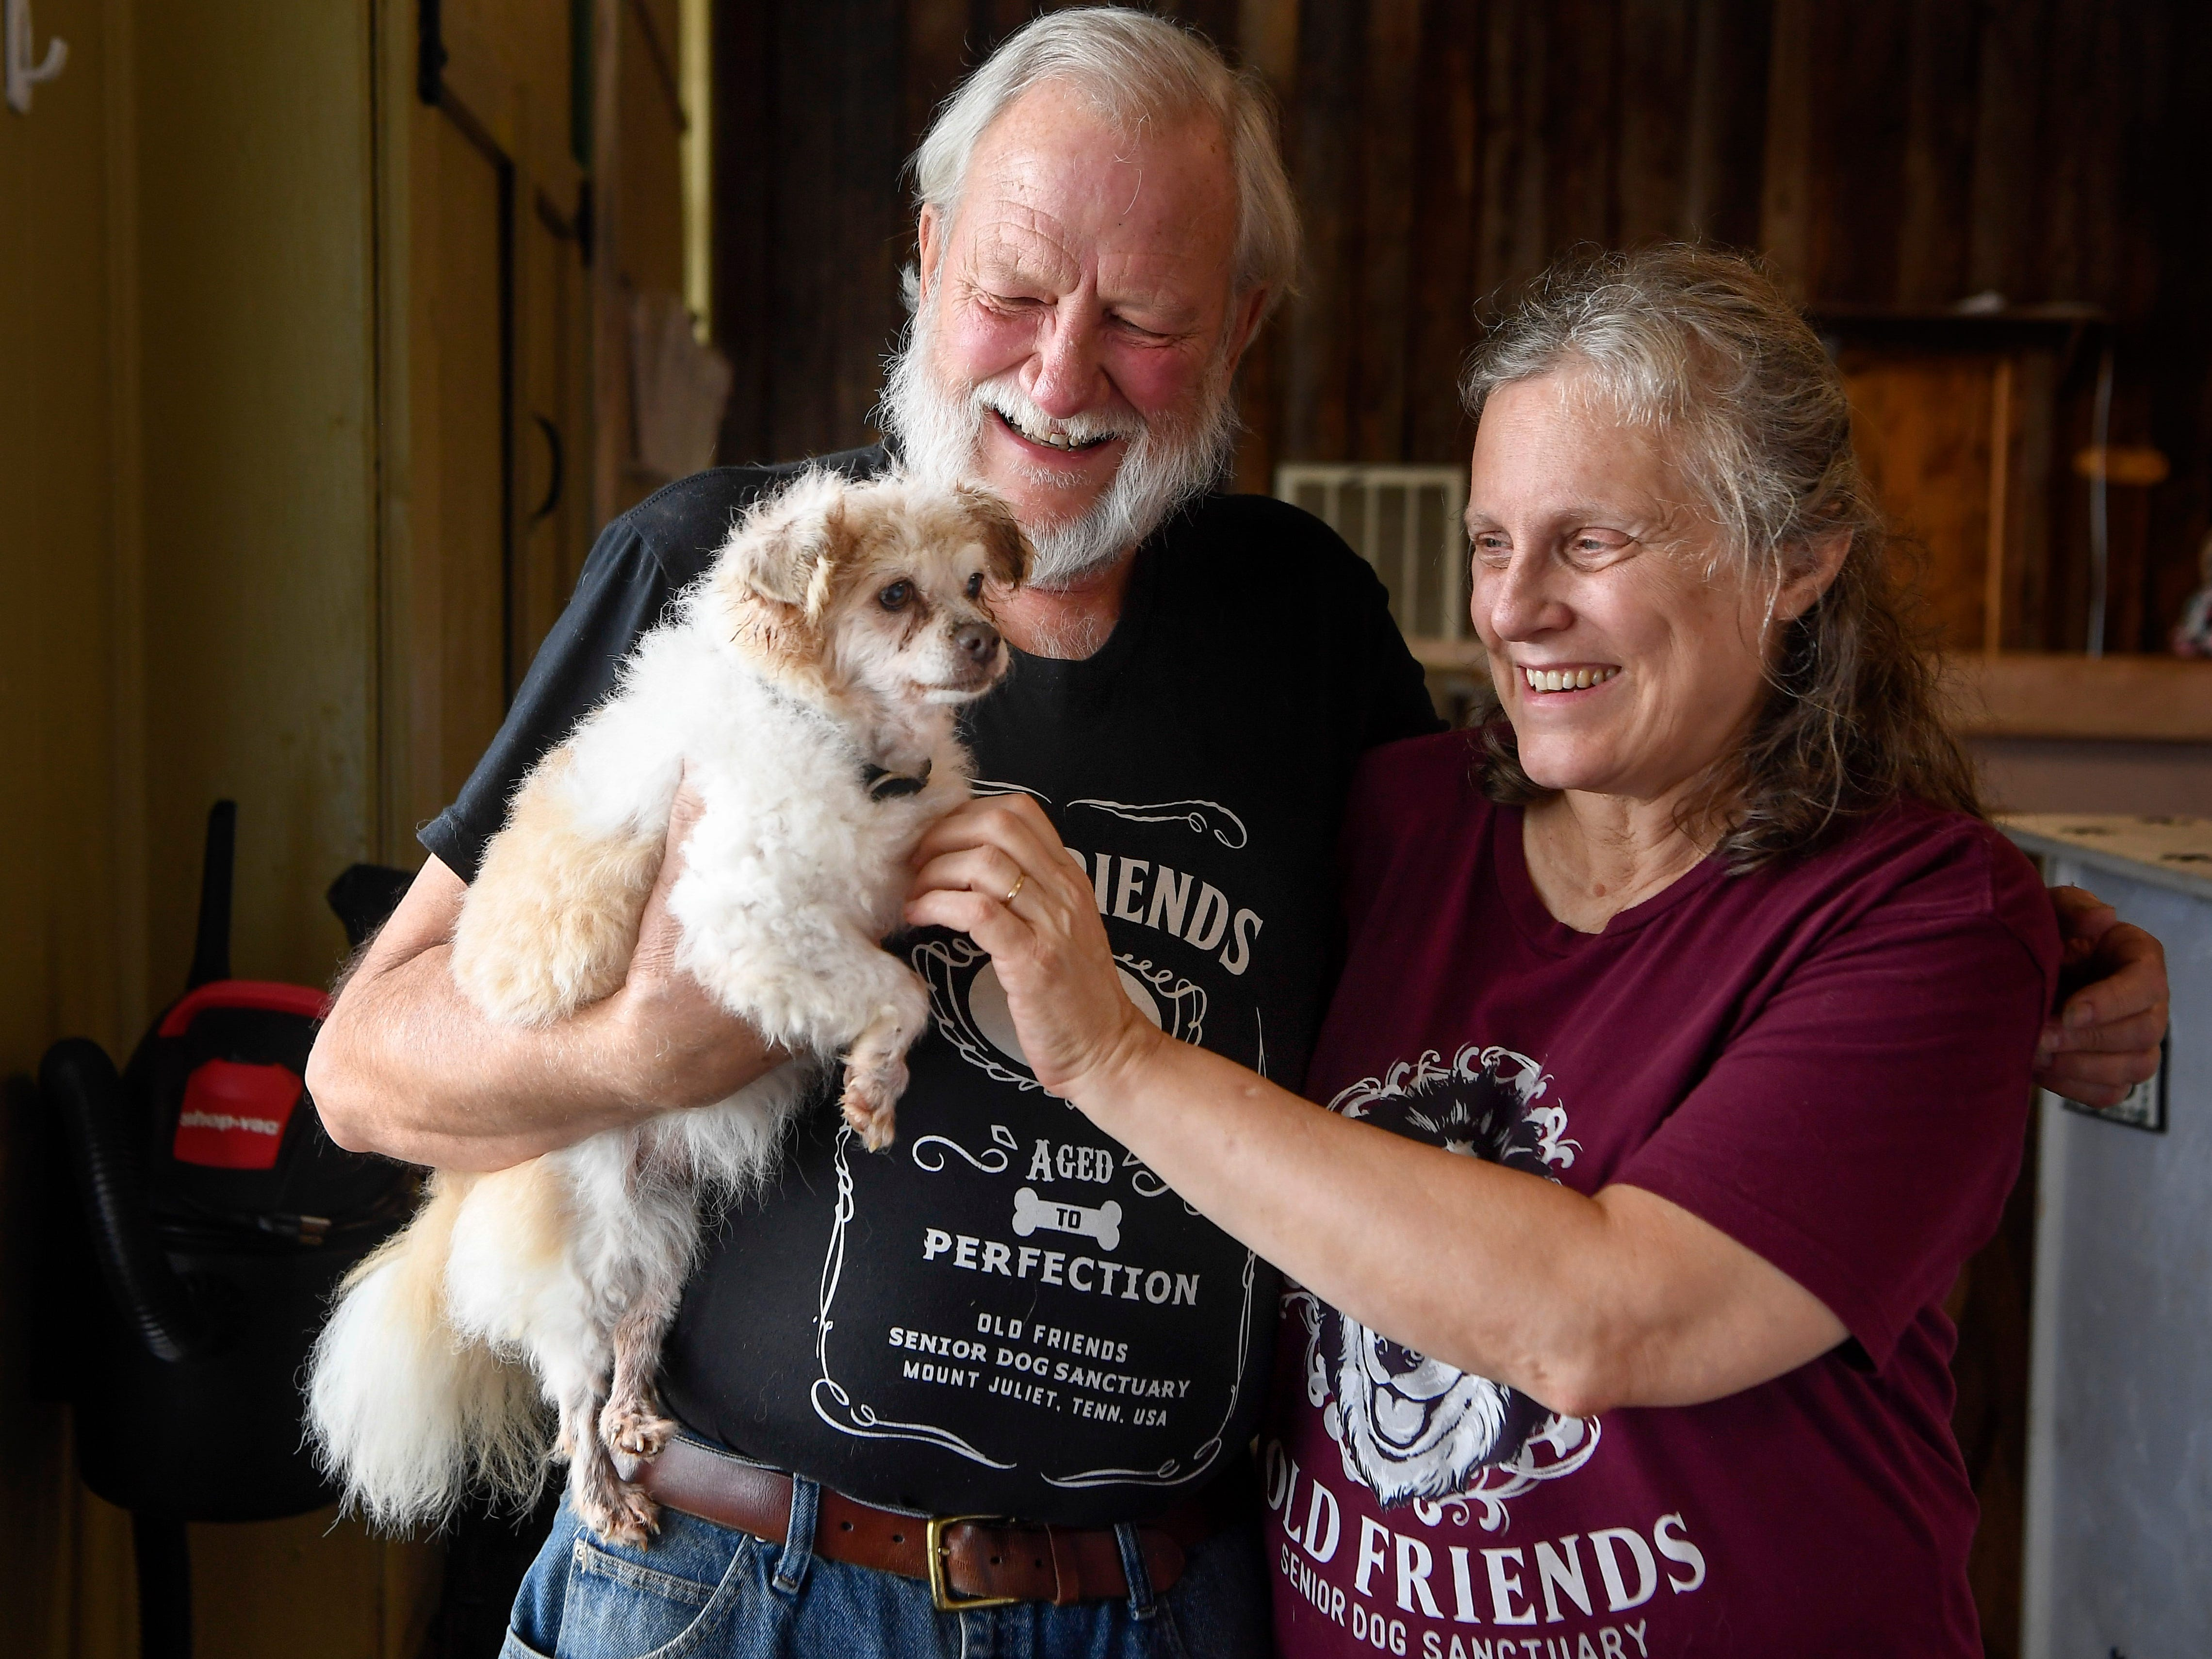 Michael and Zina Goodin, the founders of Old Friends Senior Dog Sanctuary in Mount Juliet, pose with Tigger, Tenn., Monday, Sept. 24, 2018.